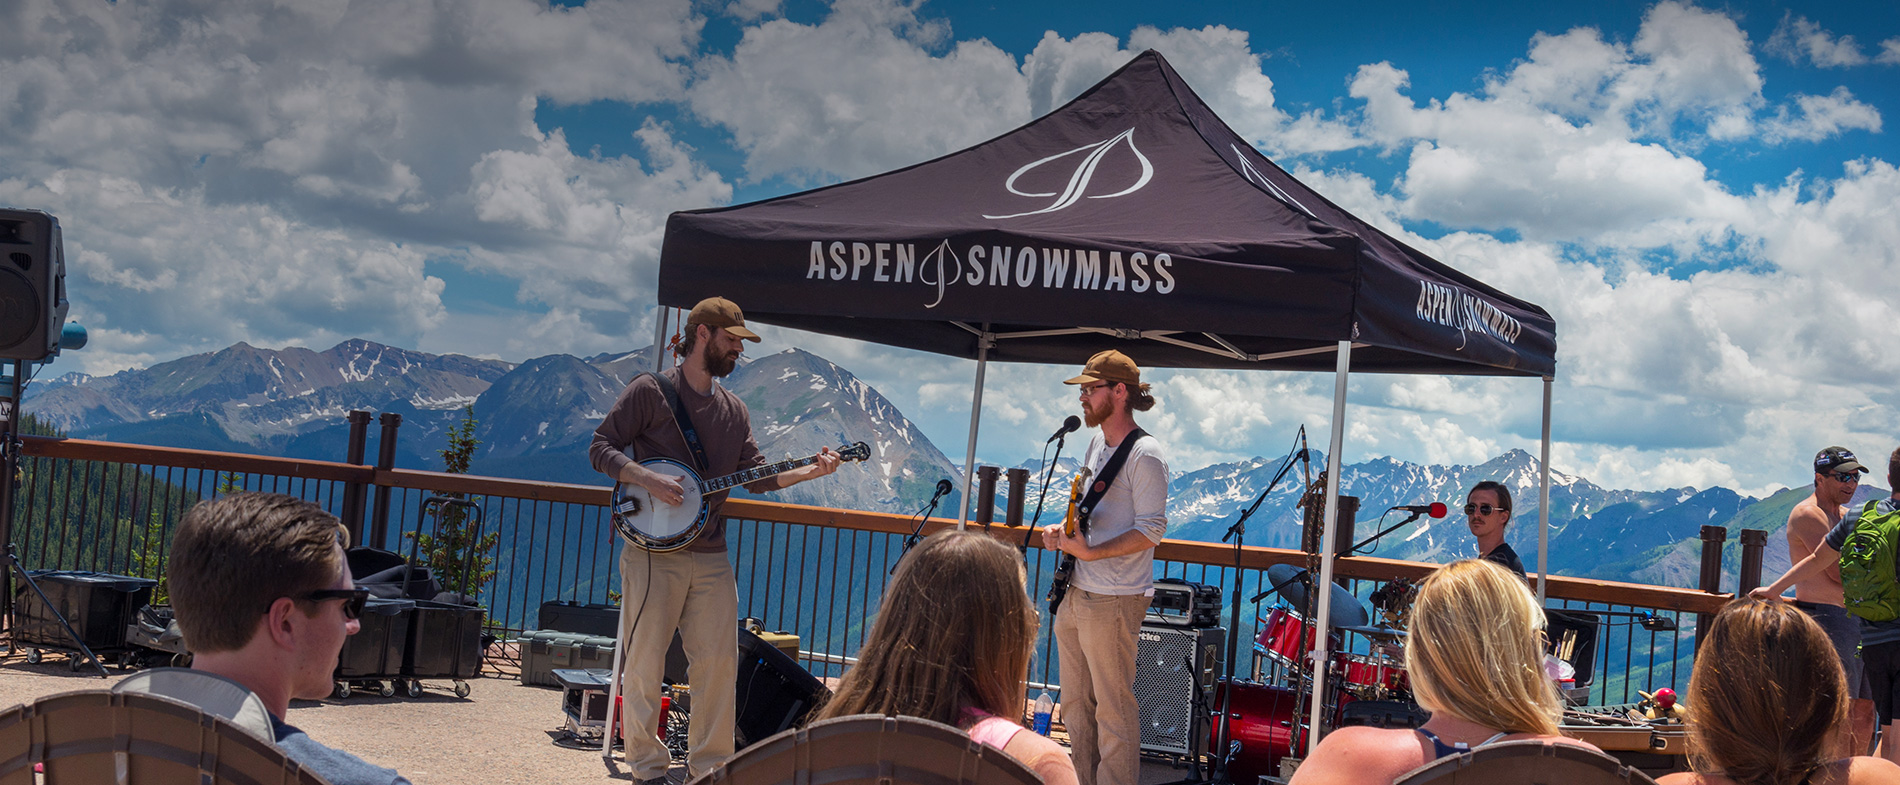 bluegrass concerts on aspen mountain